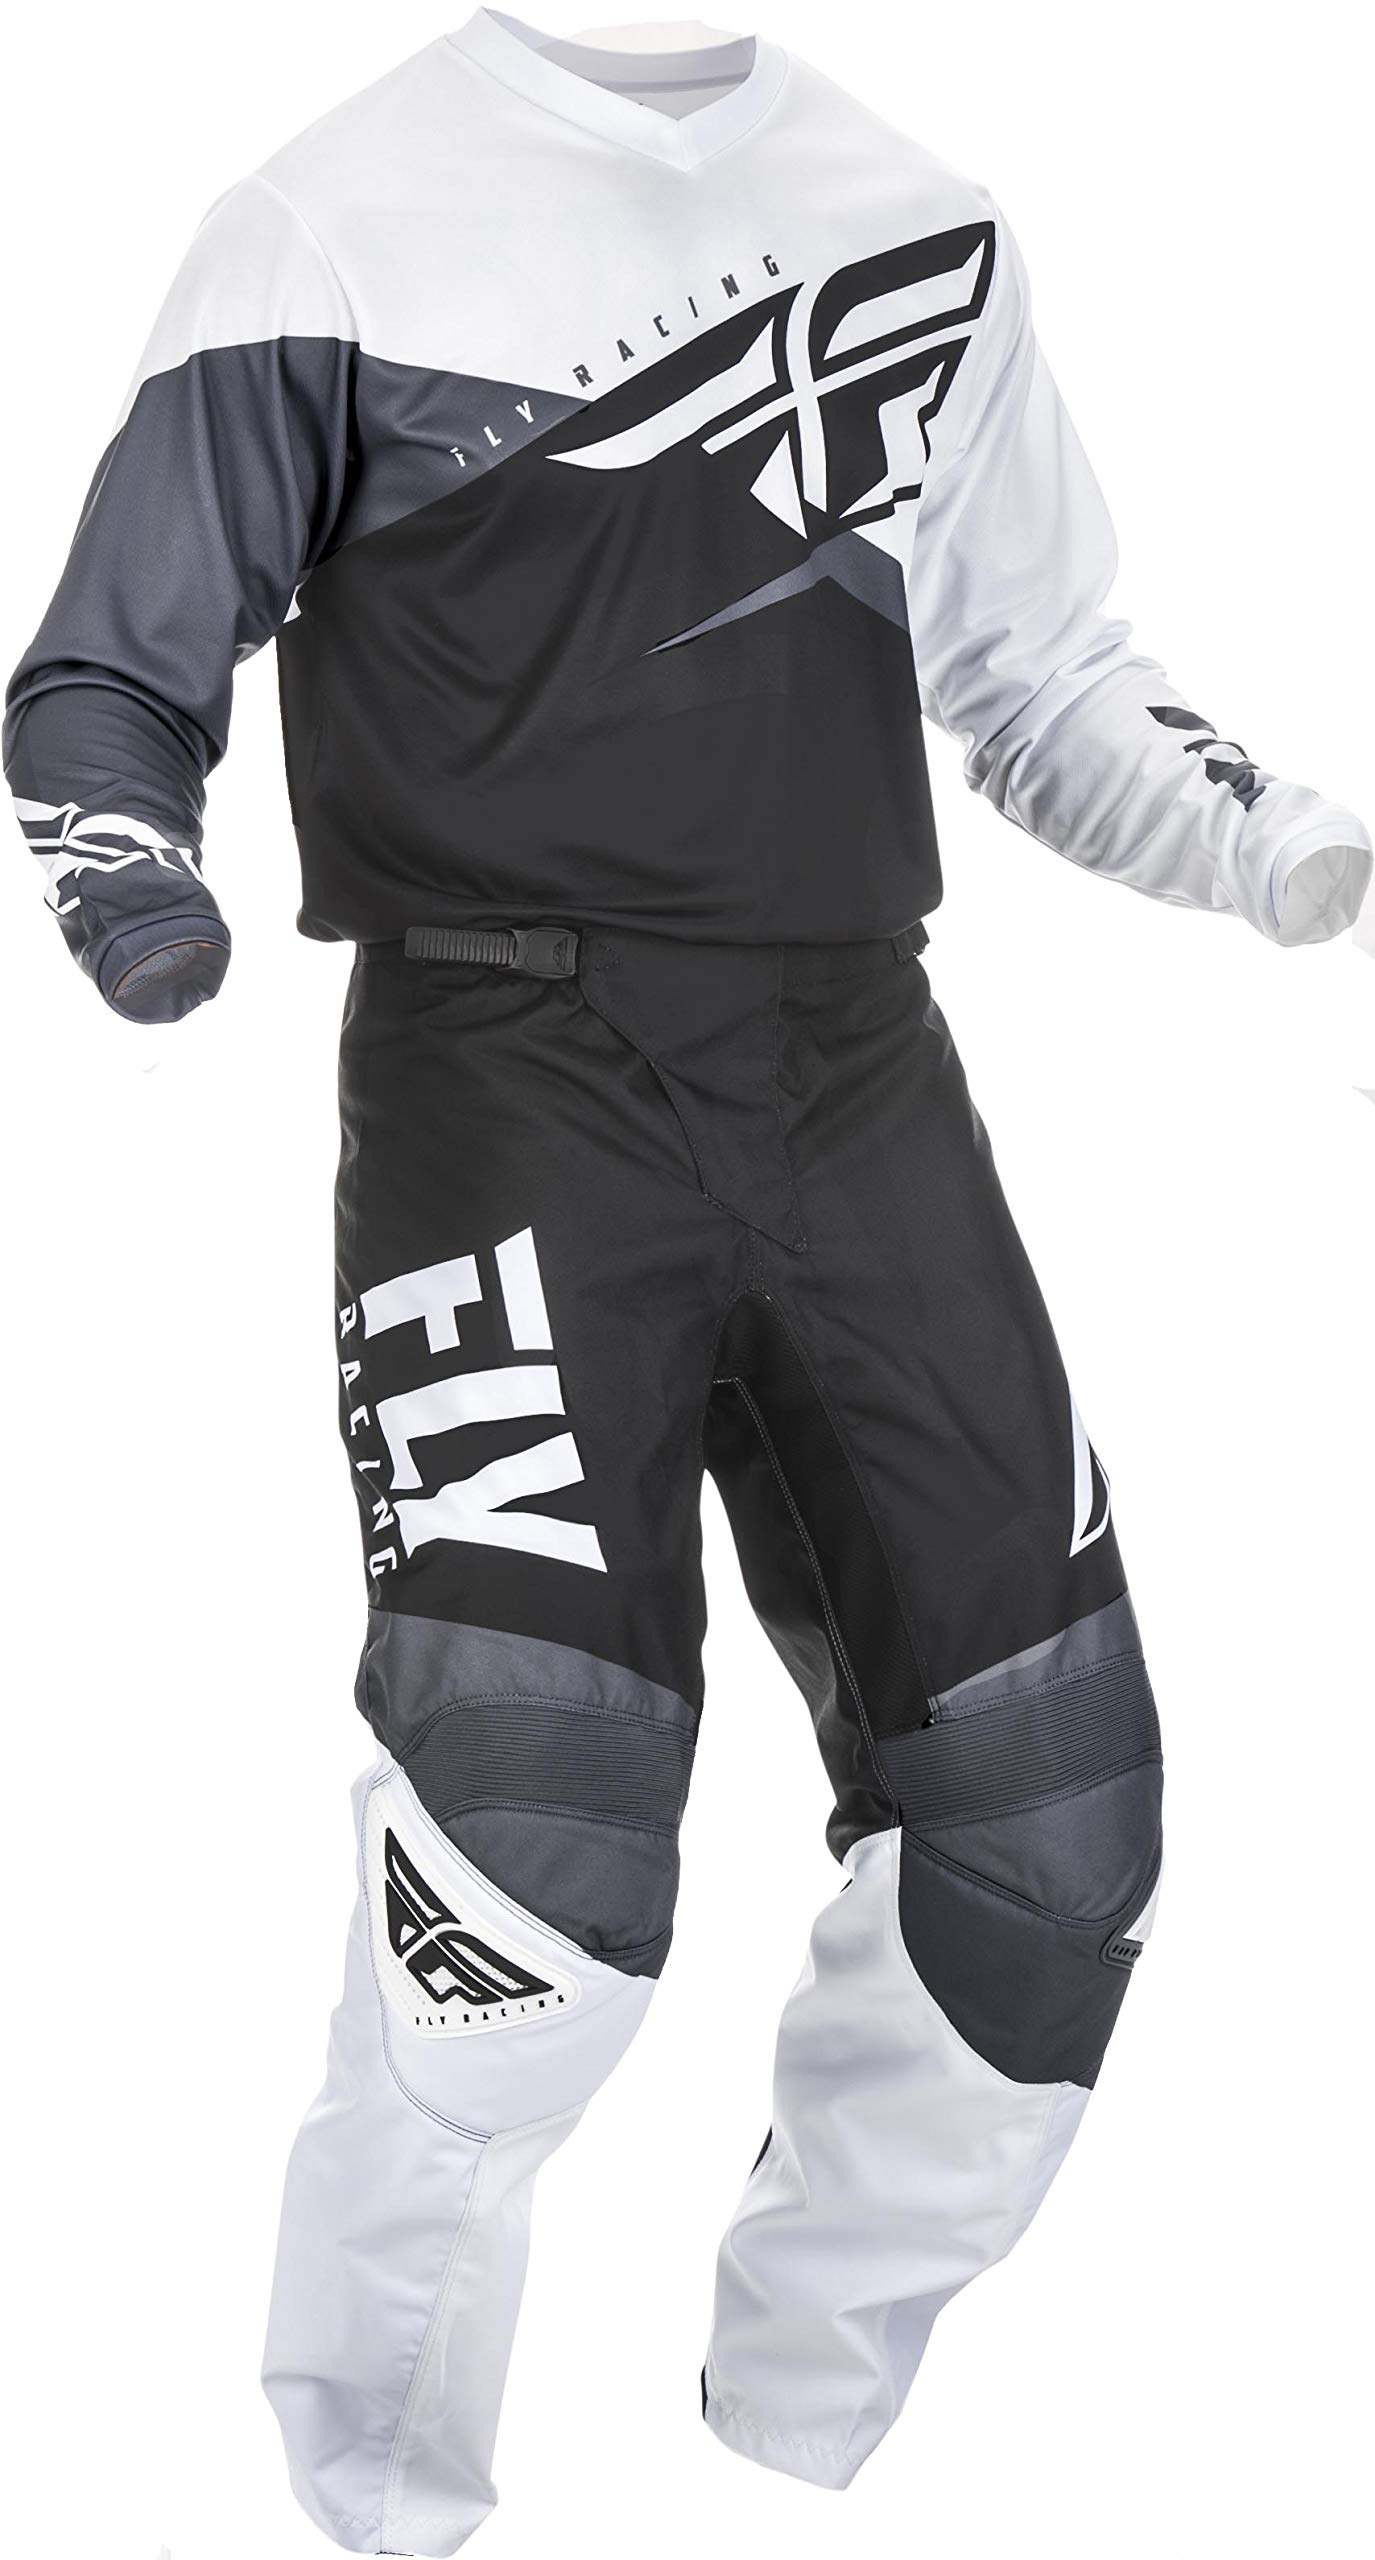 Fly Racing - 2019 F-16 (Mens Black & White & Grey 3X-Large/40W) MX Riding Gear Combo Set, Motocross Off-Road Dirt Bike Light Weight Durable Jersey & Mesh Comfort Liner Stretch Pre Shaped Knees Pant by Fly Racing